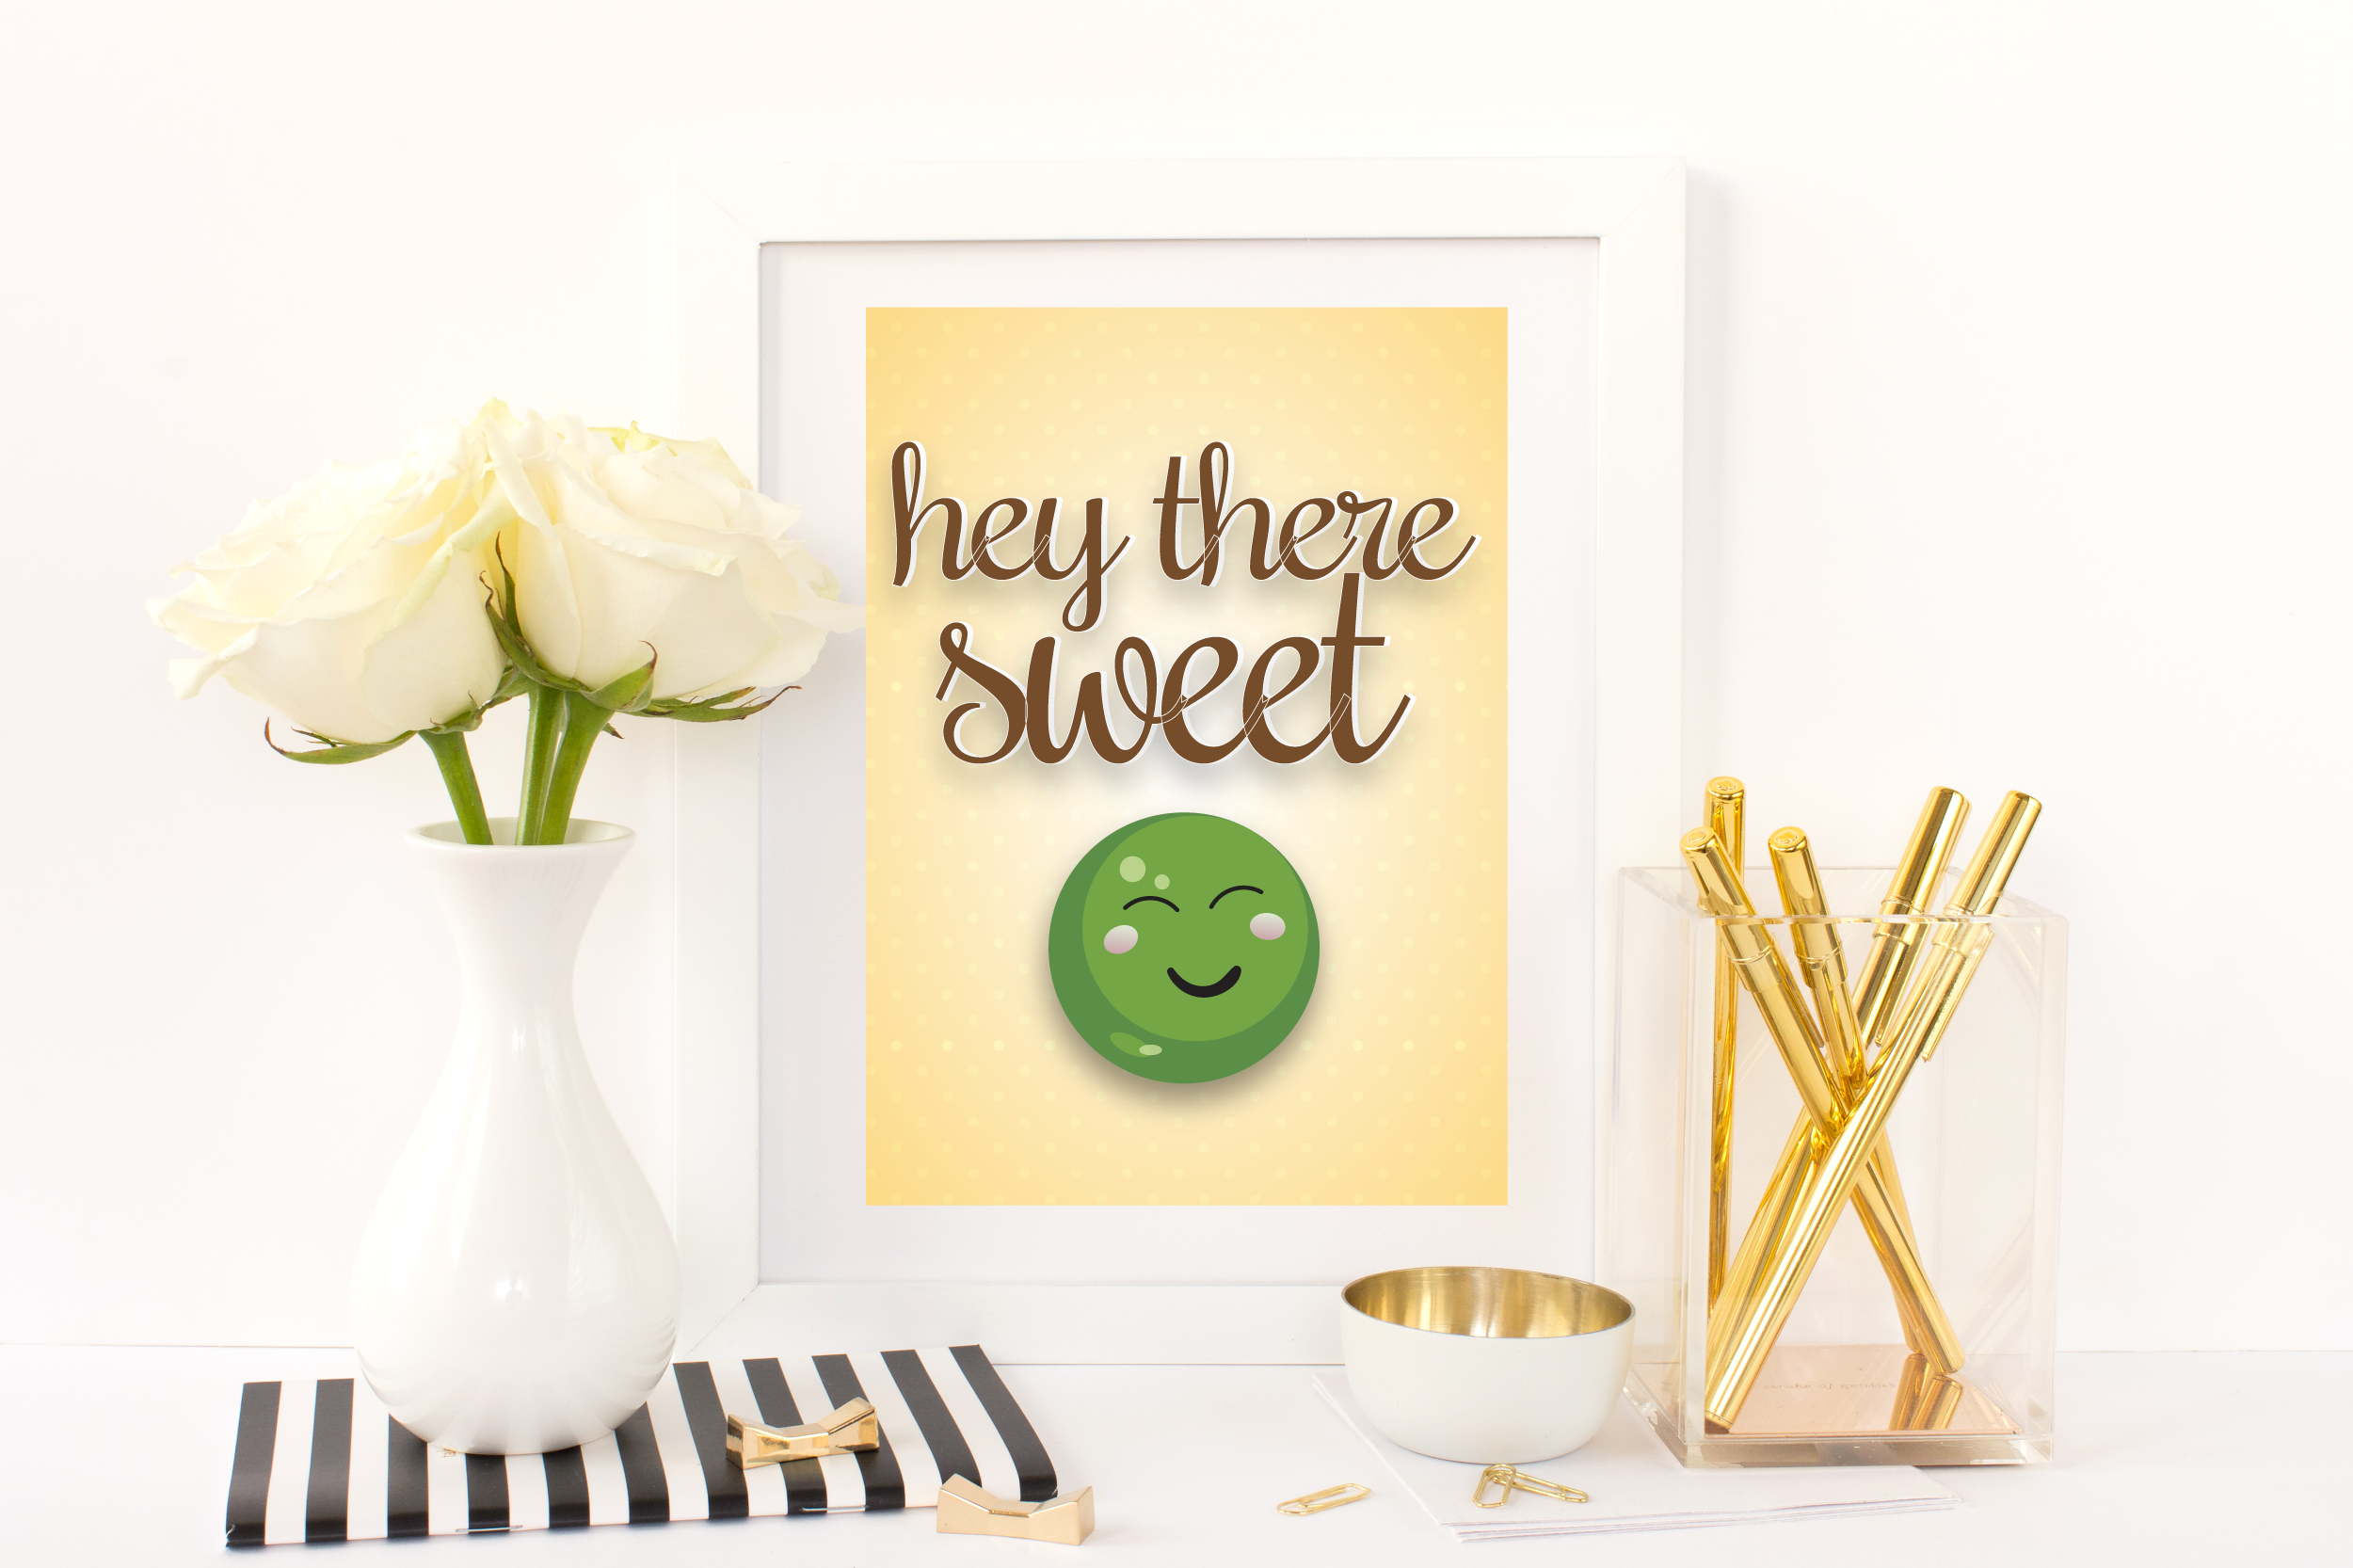 Free Printable Hey There Sweet Pea from @pinkimonogirl for a gallery wall in a nursery